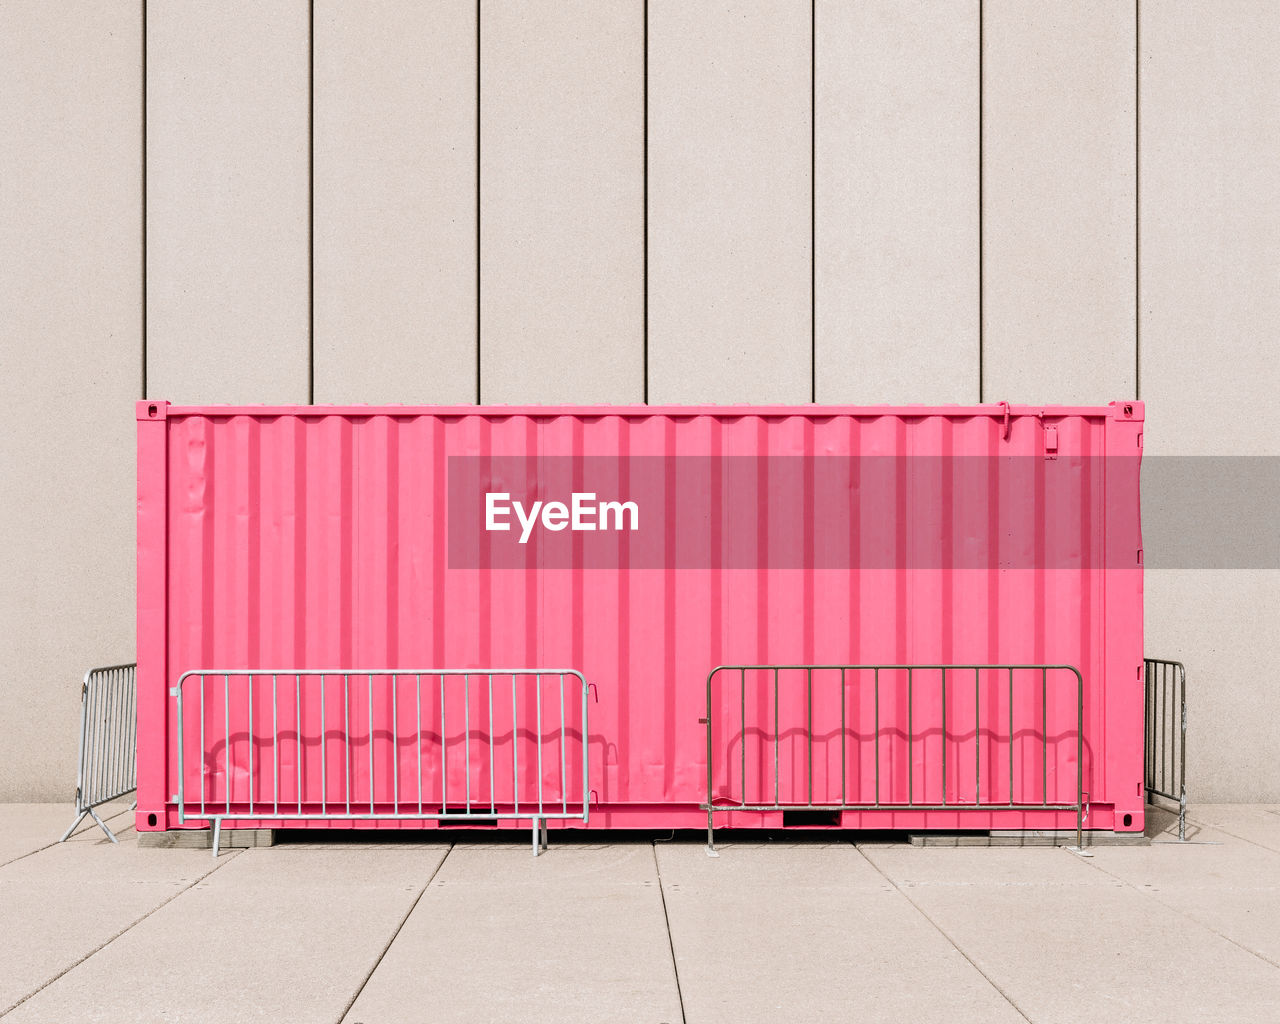 architecture, no people, pink color, wall - building feature, built structure, day, side by side, industry, stack, large group of objects, outdoors, building exterior, freight transportation, domestic room, business, metal, container, red, transportation, warehouse